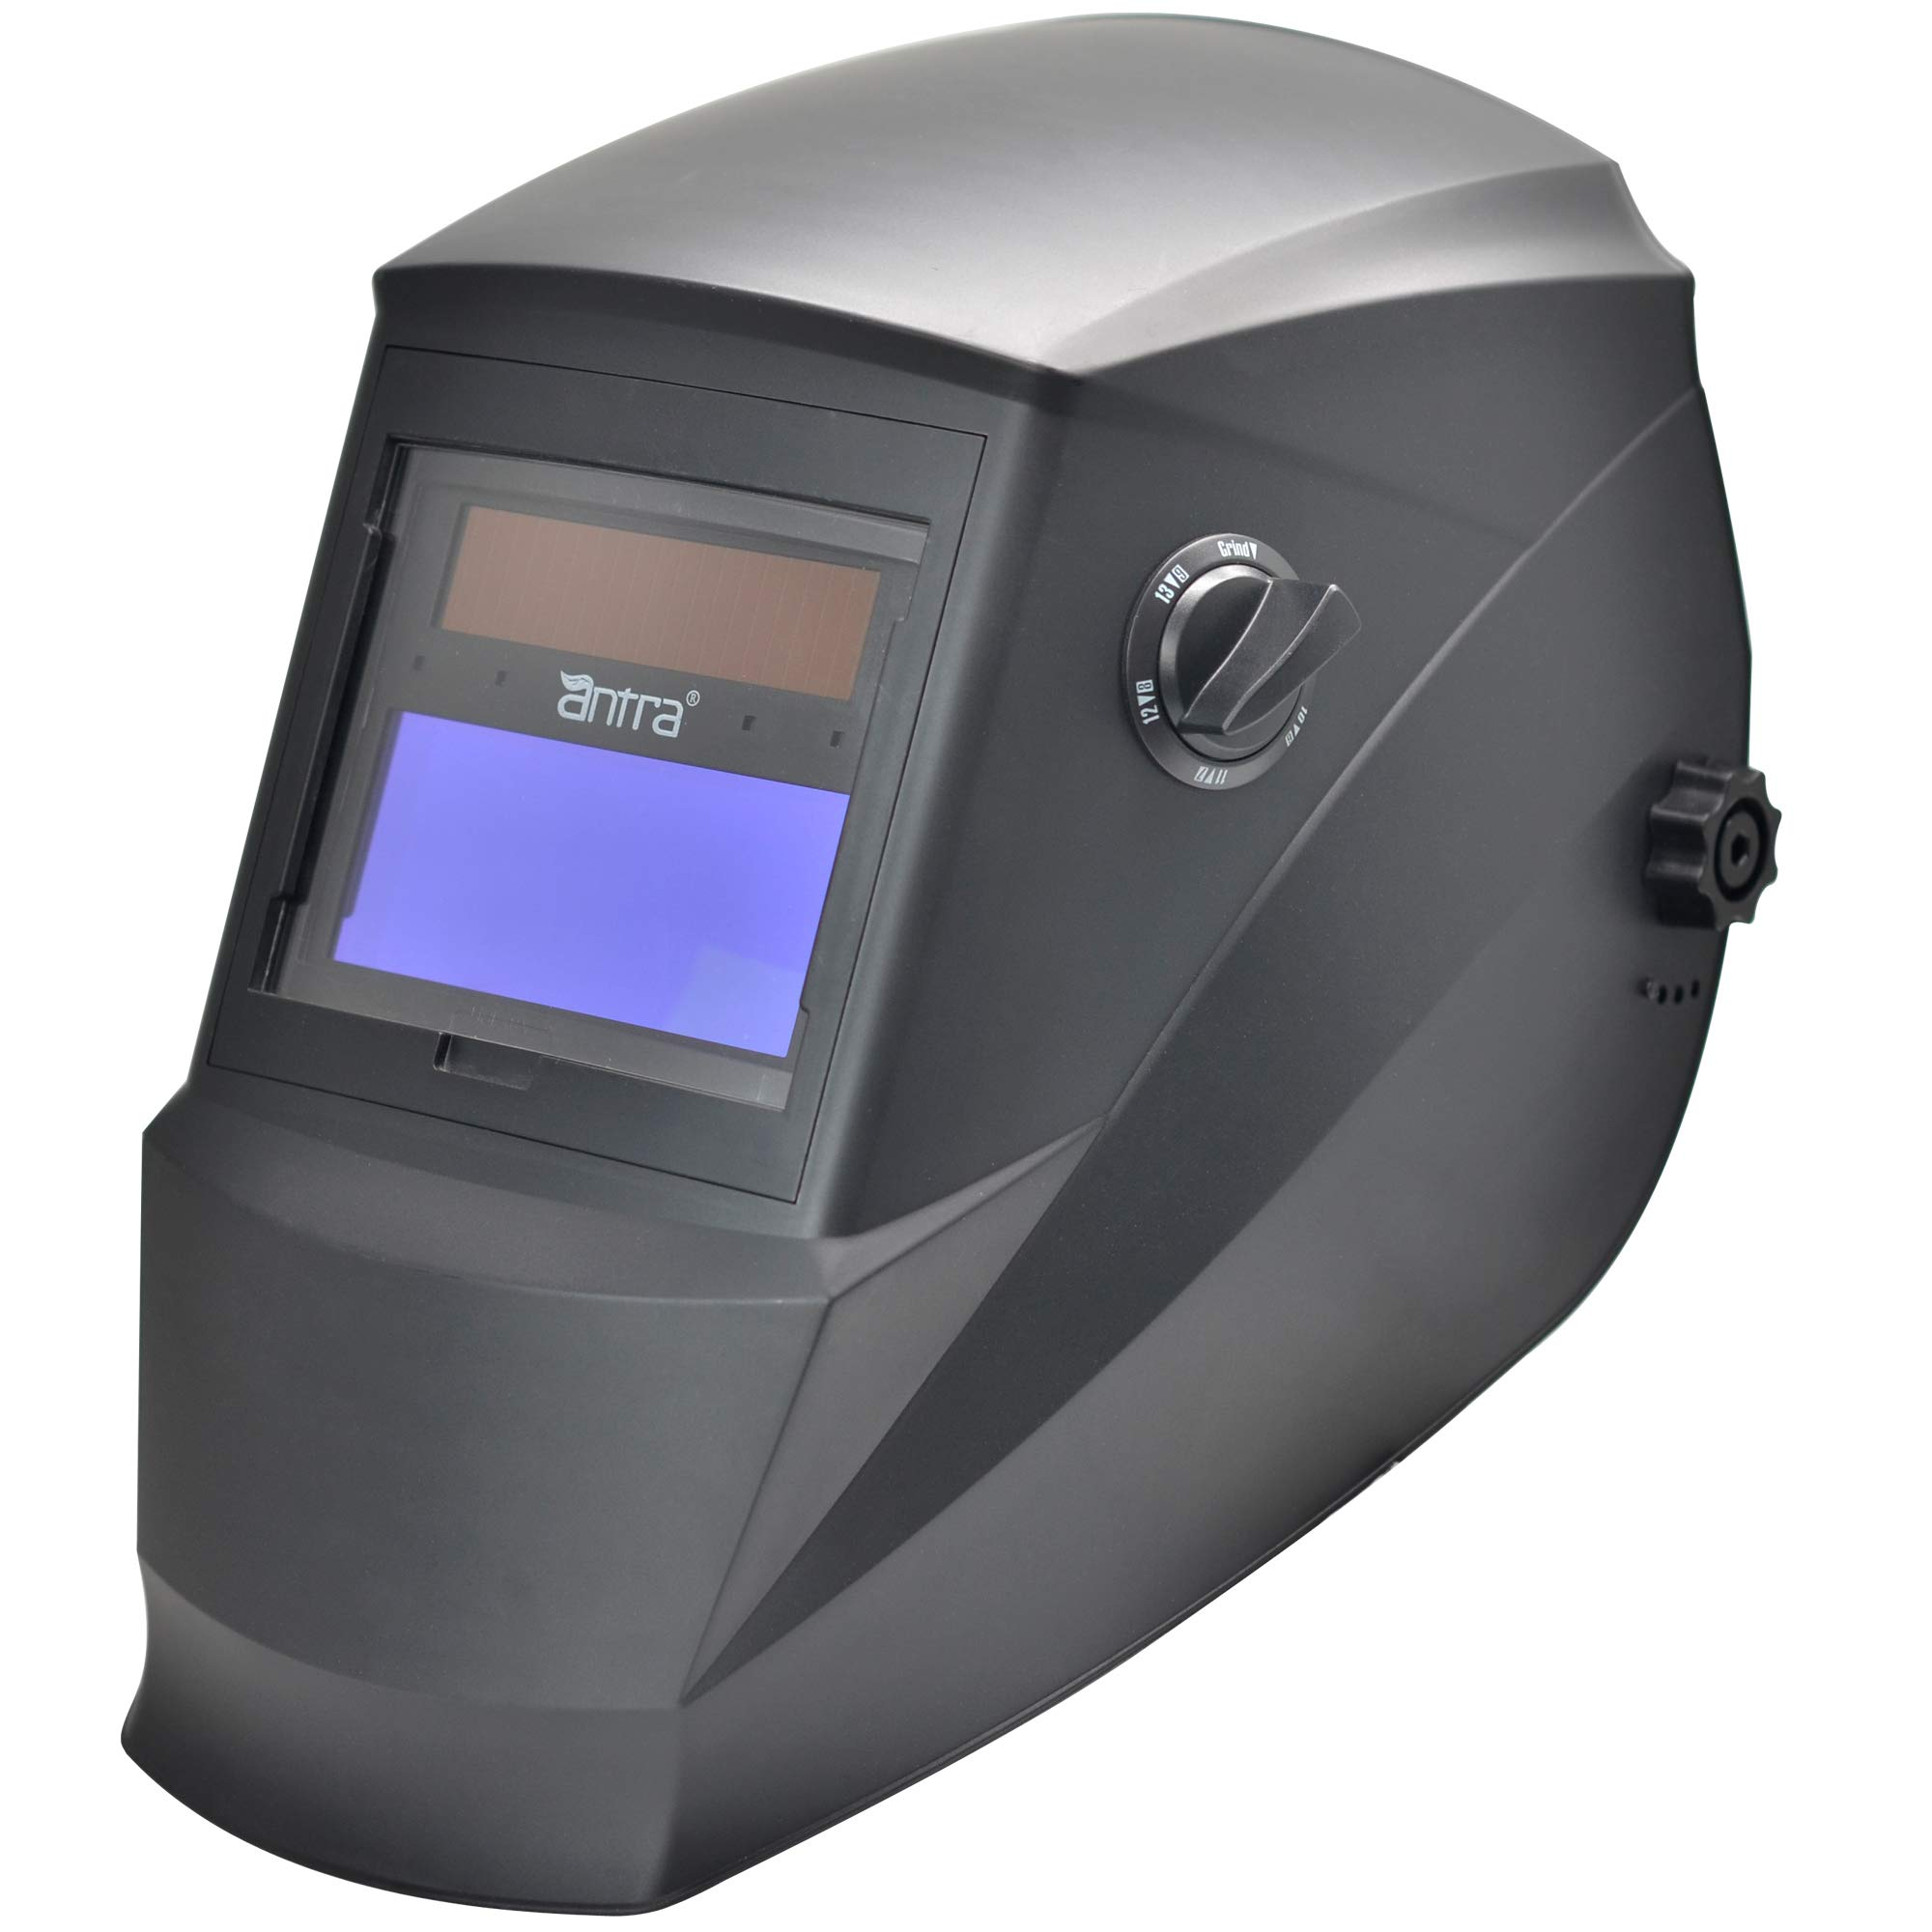 Antra Welding Helmet AH6-260-0000 Solar Power Auto Darkening Wide Shade Range 4/5-9/9-13 with Grinding 6+1 Extra lens covers Stable for TIG MIG MMA Plasma by Antra